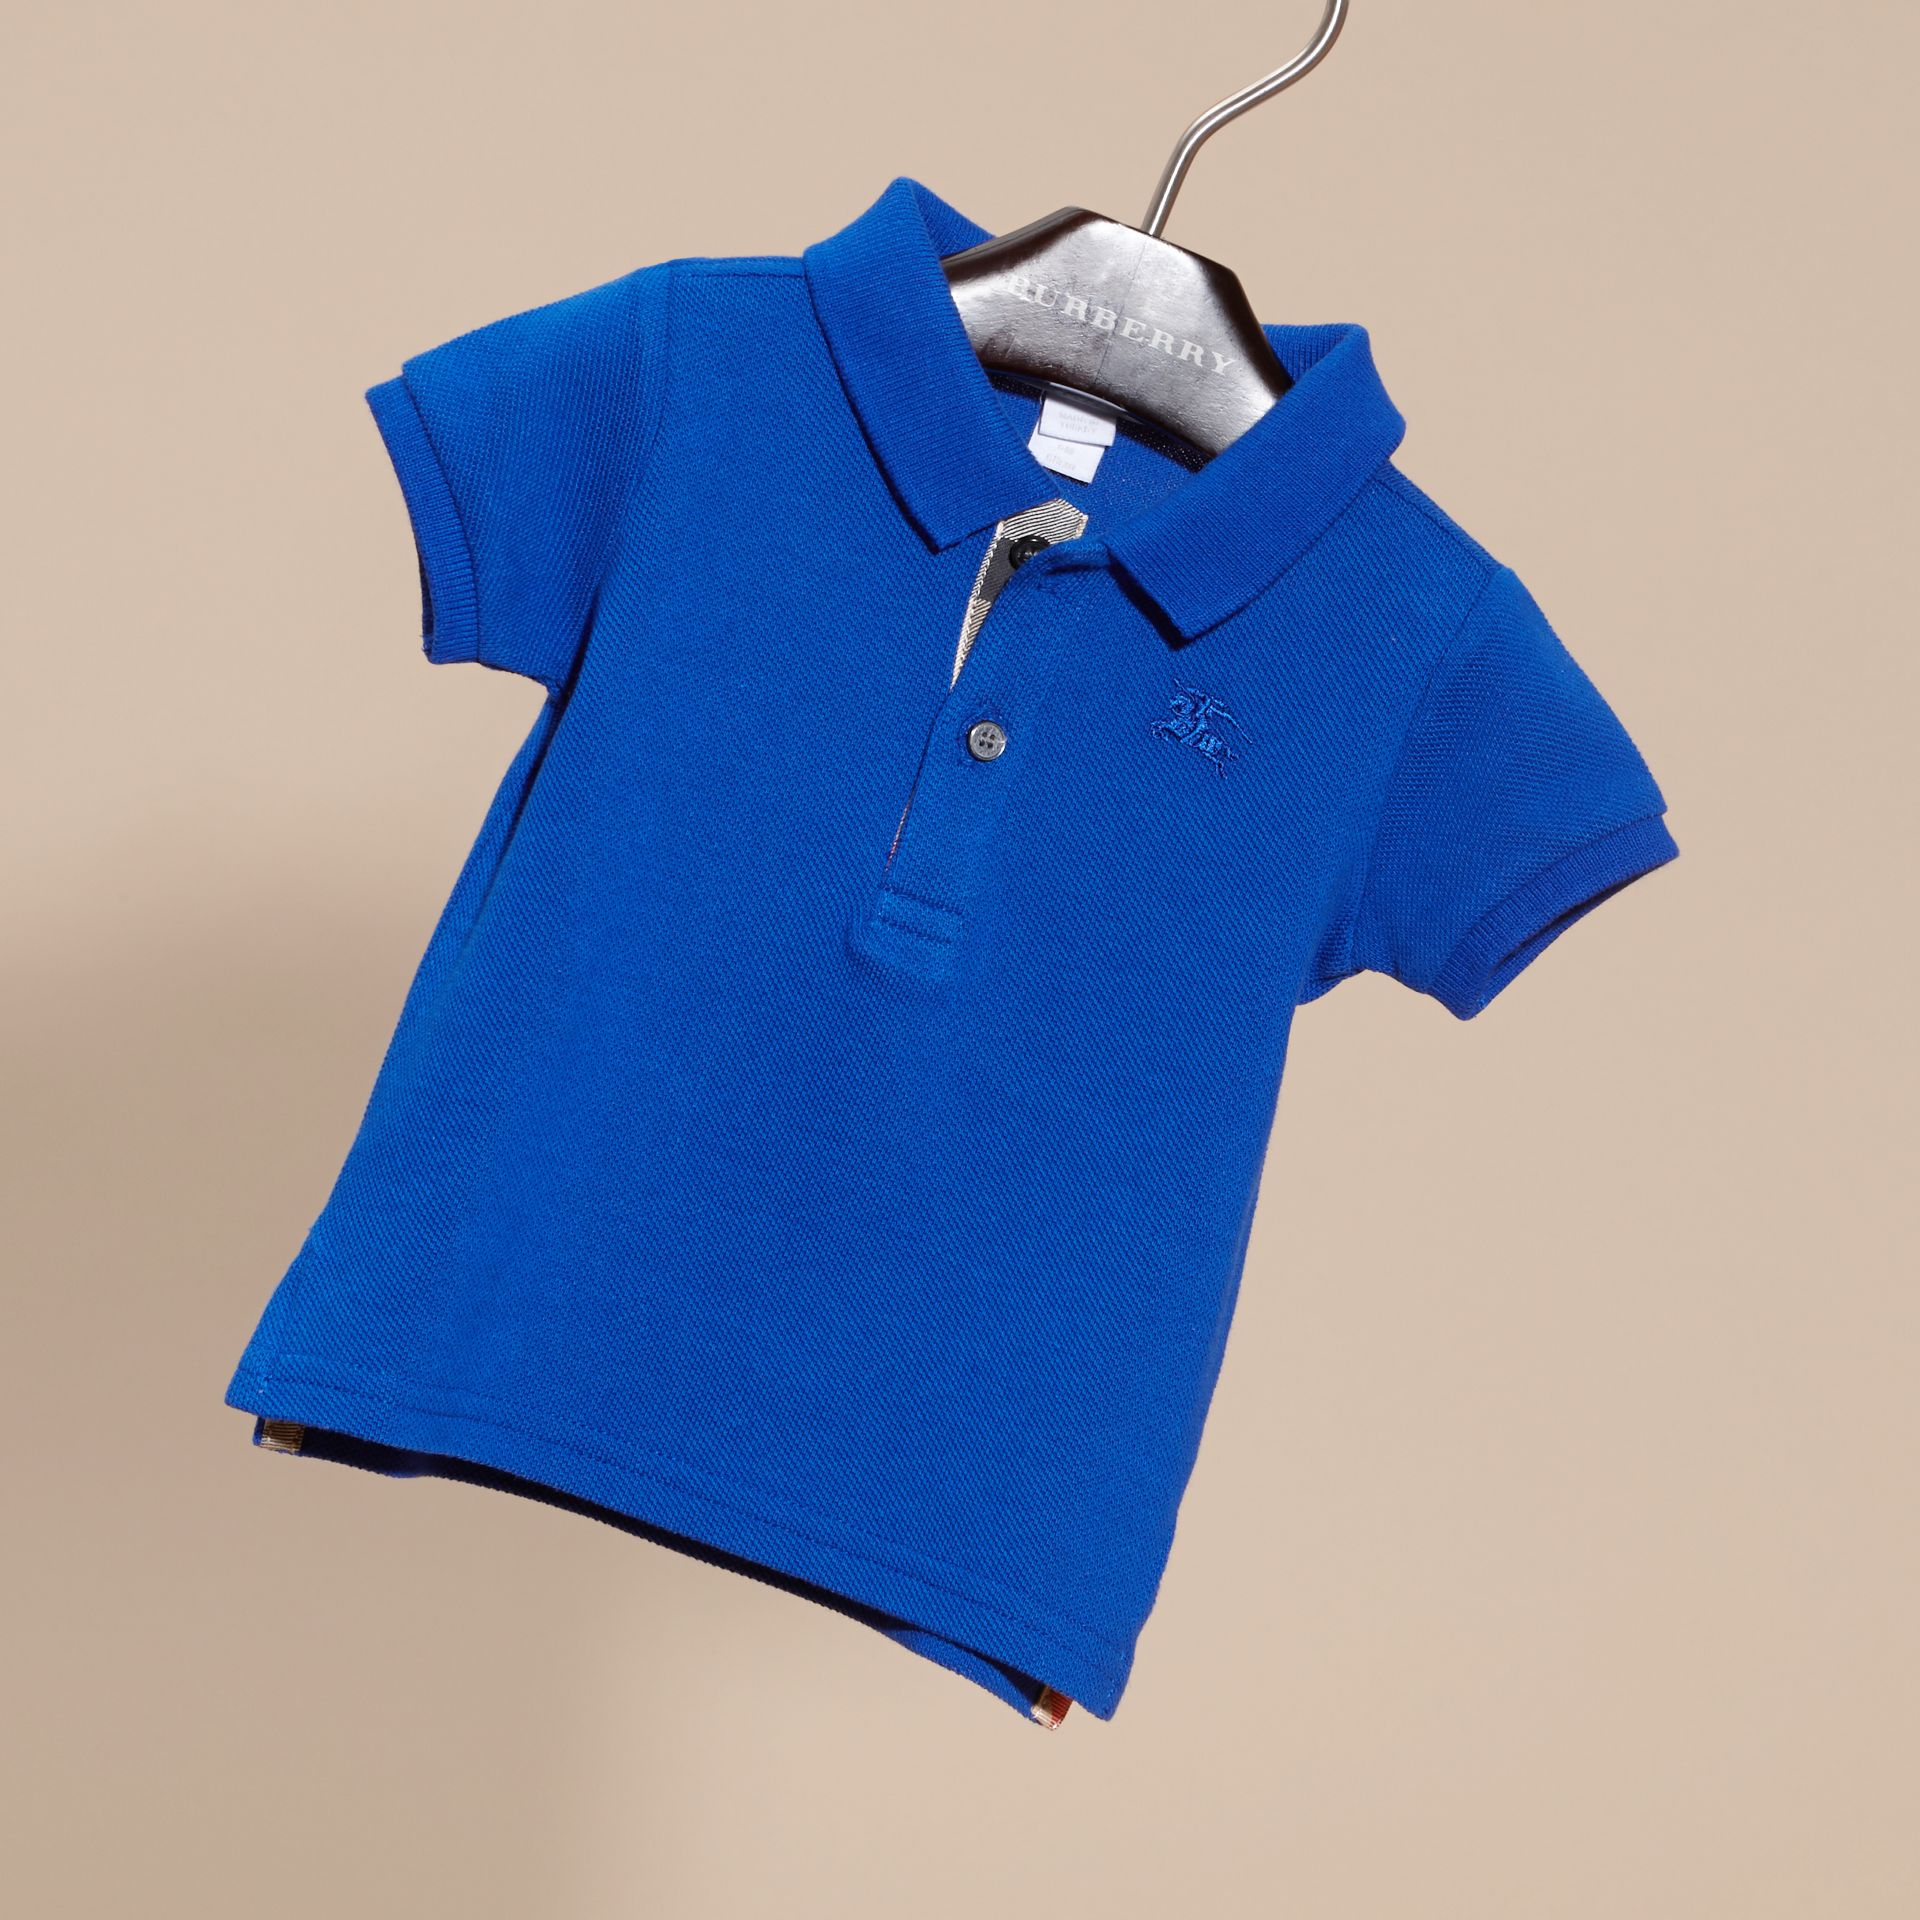 Brilliant blue Cotton Piqué Polo Shirt Brilliant Blue - gallery image 3